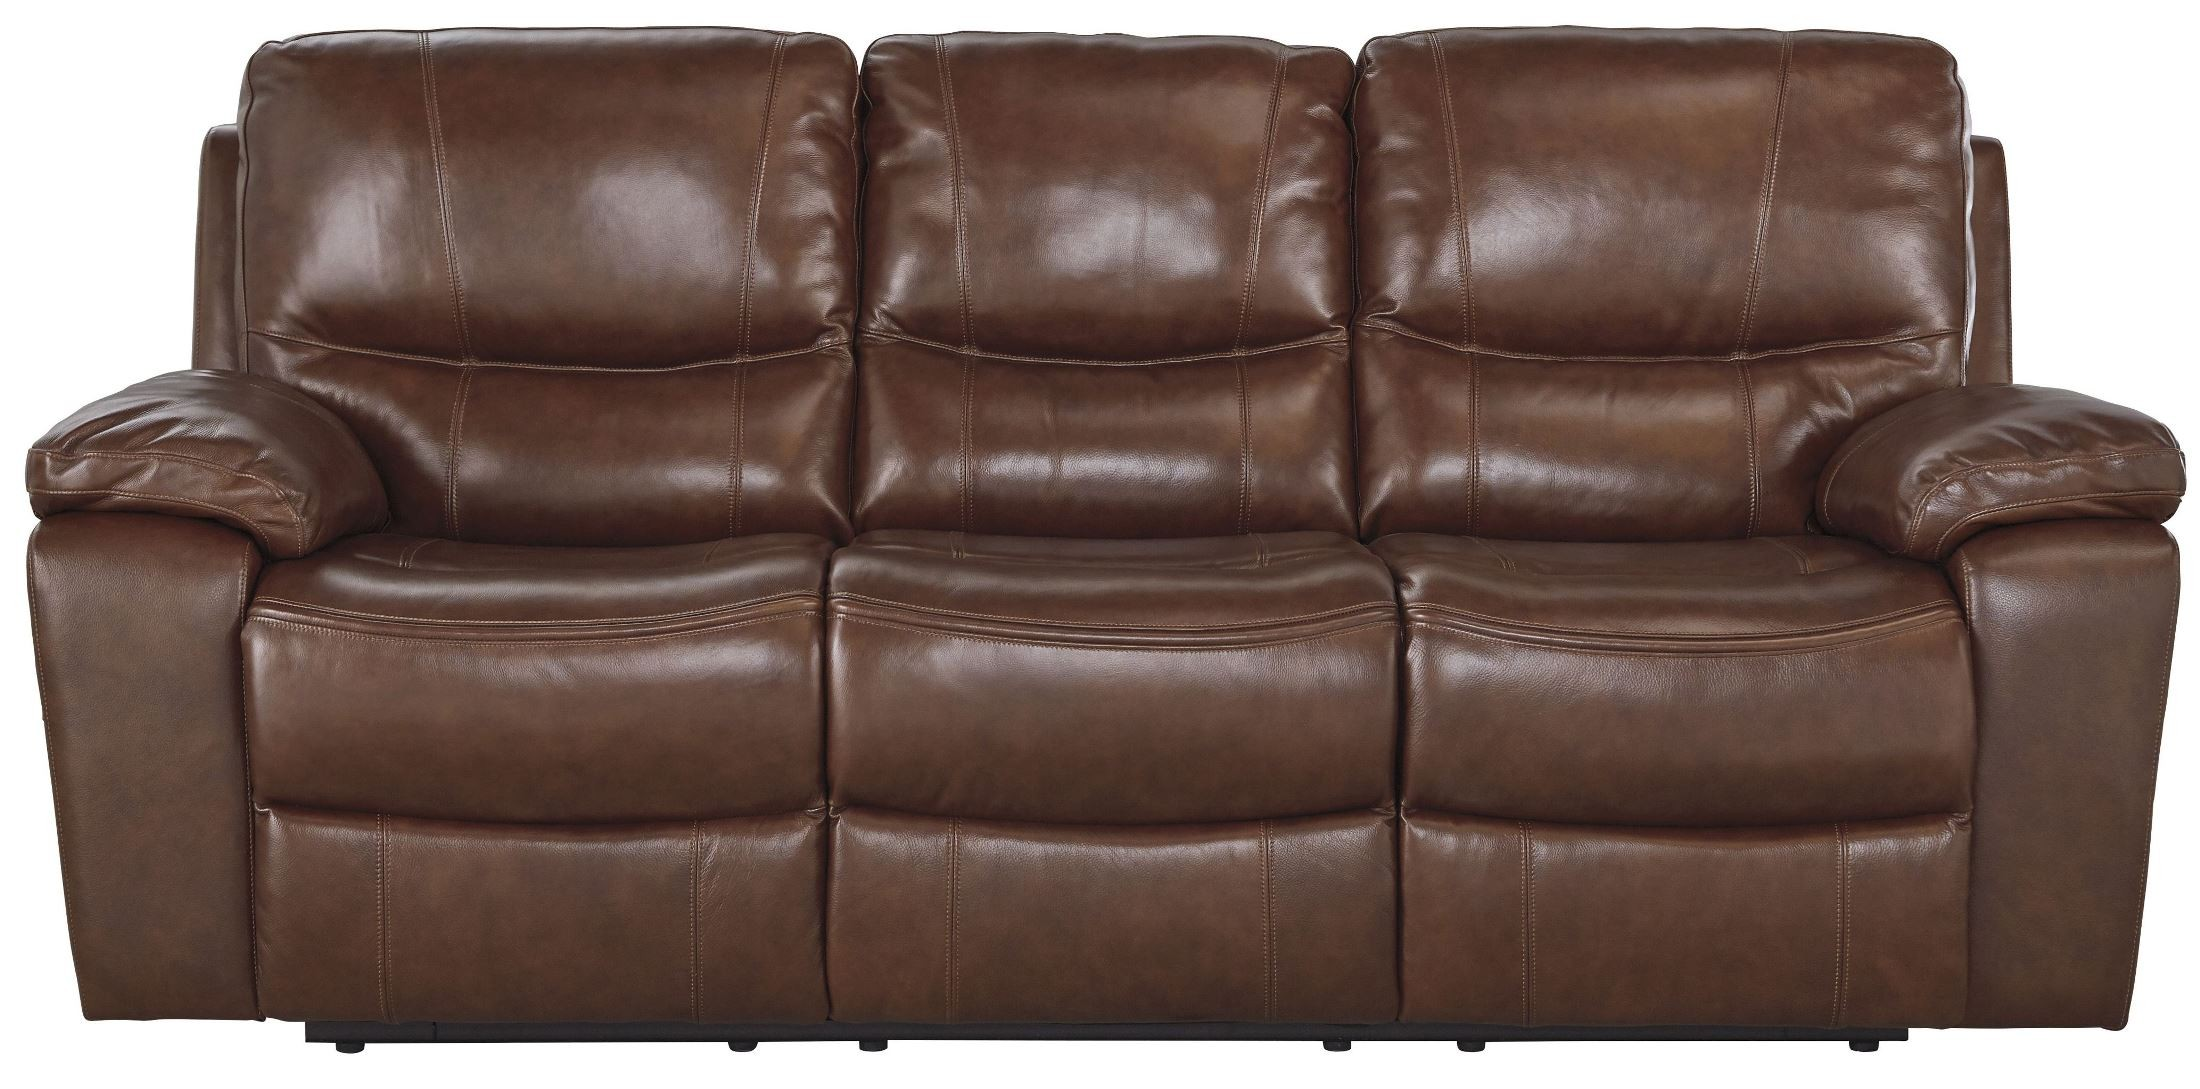 Penache saddle power reclining sofa from ashley u7290087 for Affordable furniture 3 piece sectional in wyoming saddle